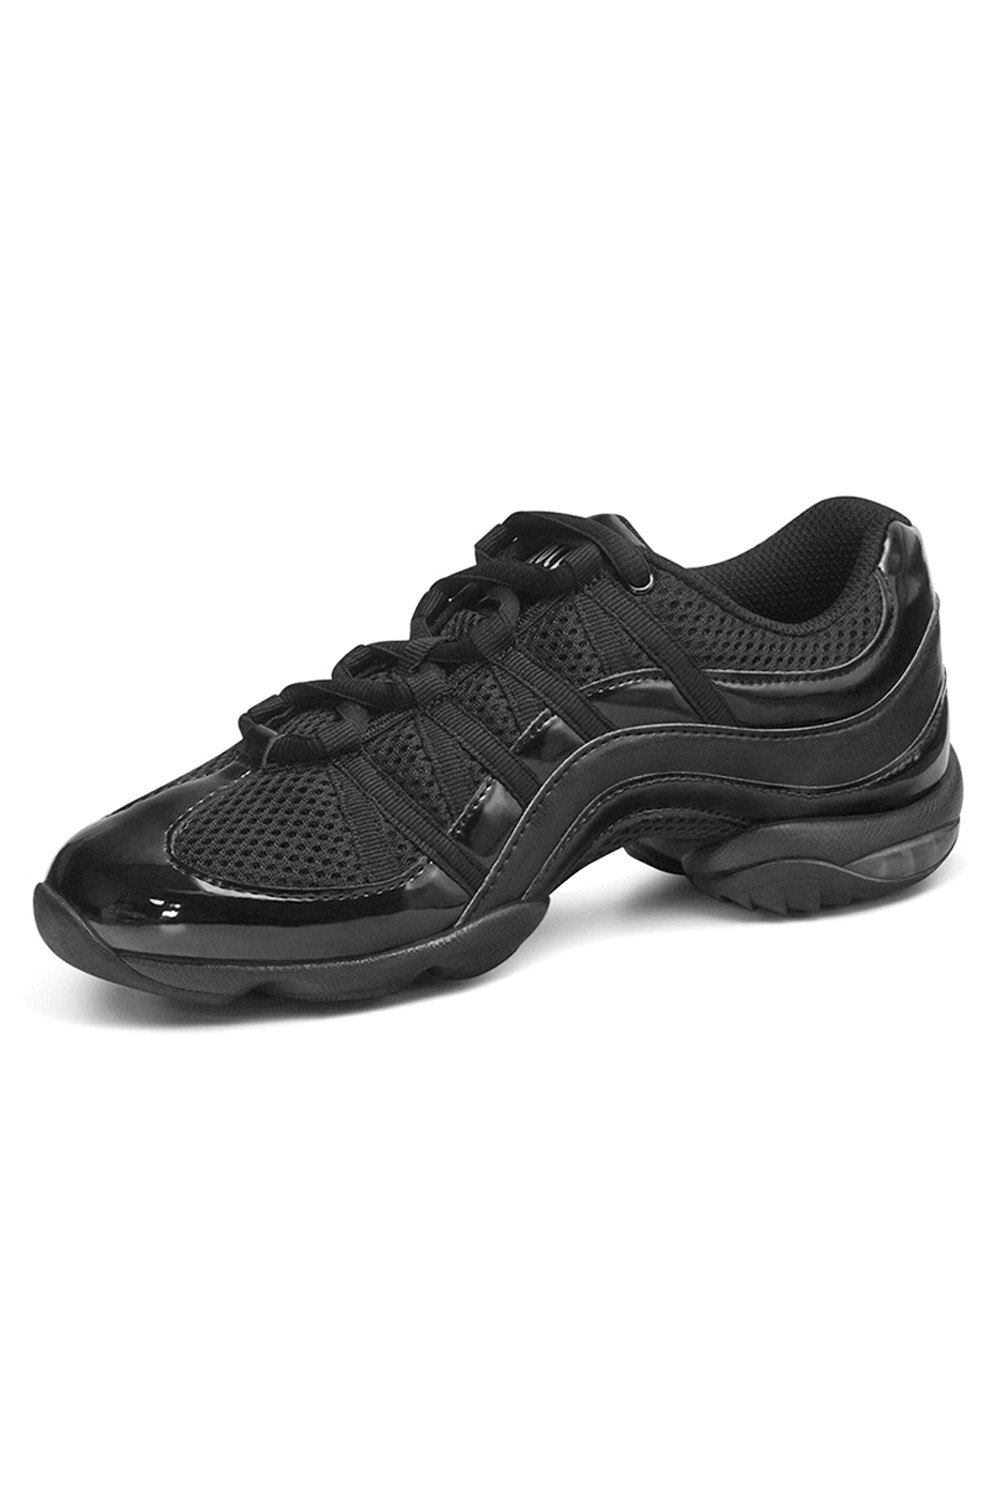 Wave - Men's Men's Dance Sneakers